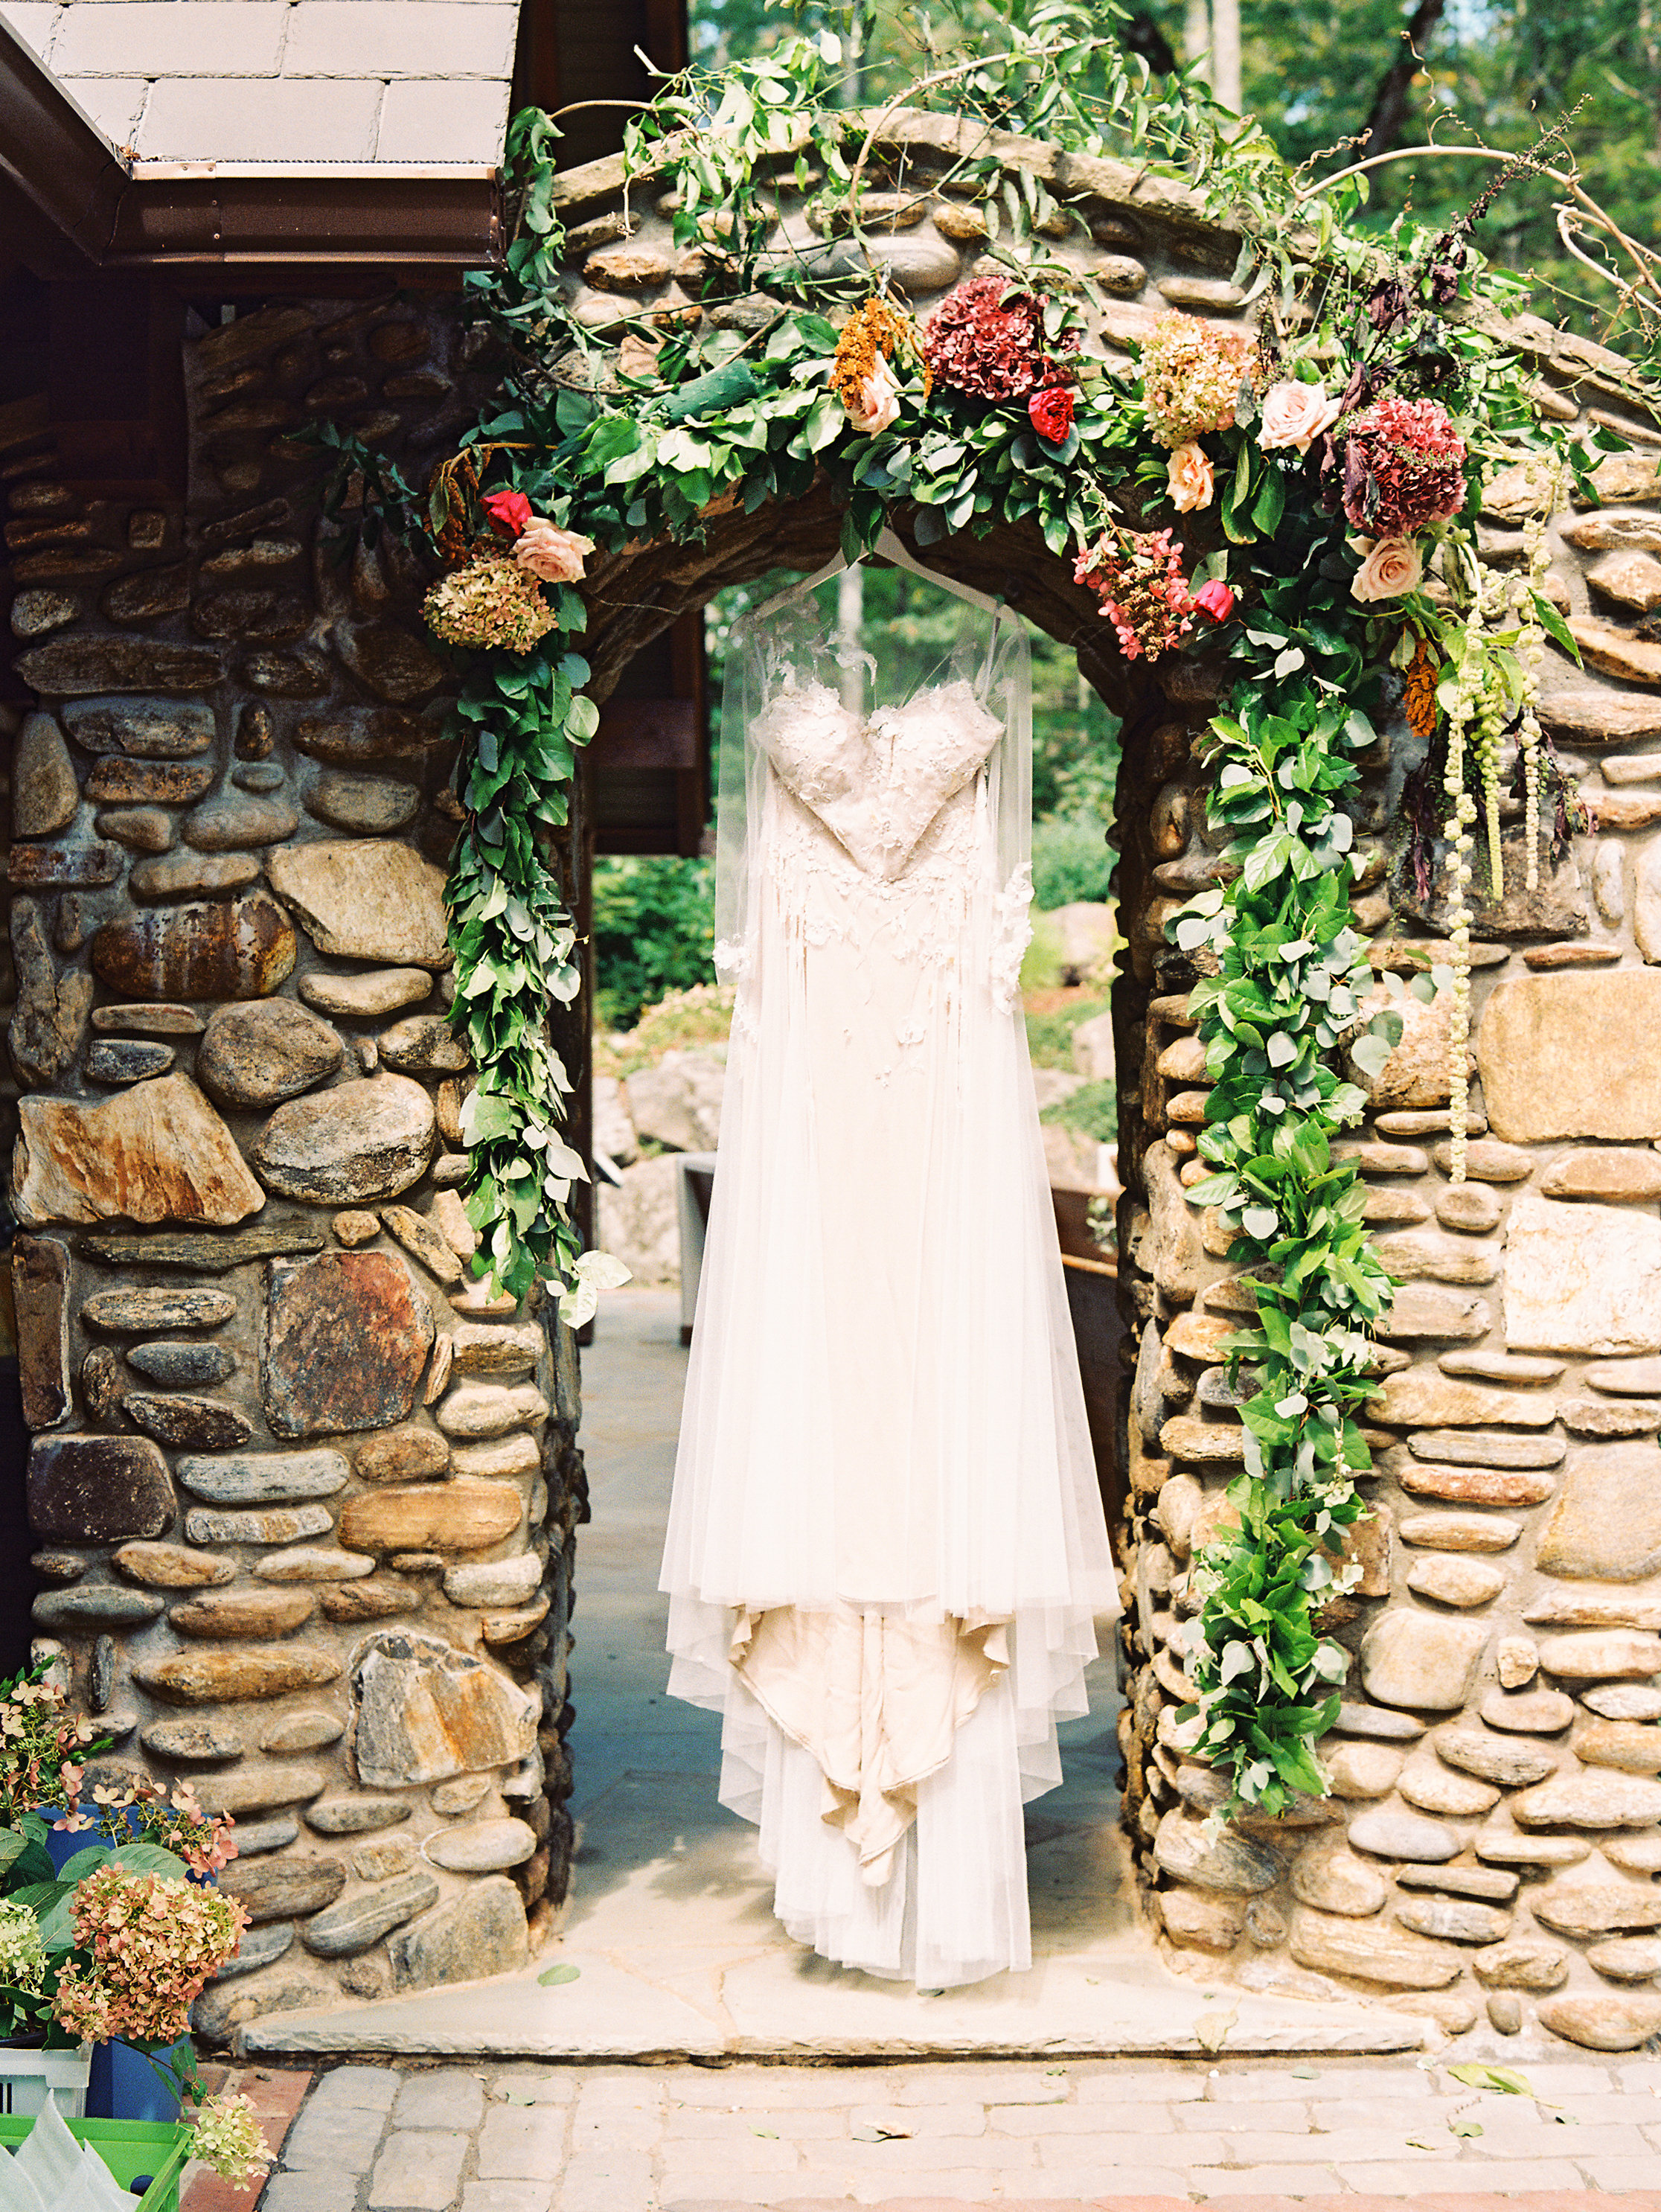 93dcb-ncmountainhomeweddingstonefloralarchweddingdressncmountainhomeweddingstonefloralarchweddingdress.jpg